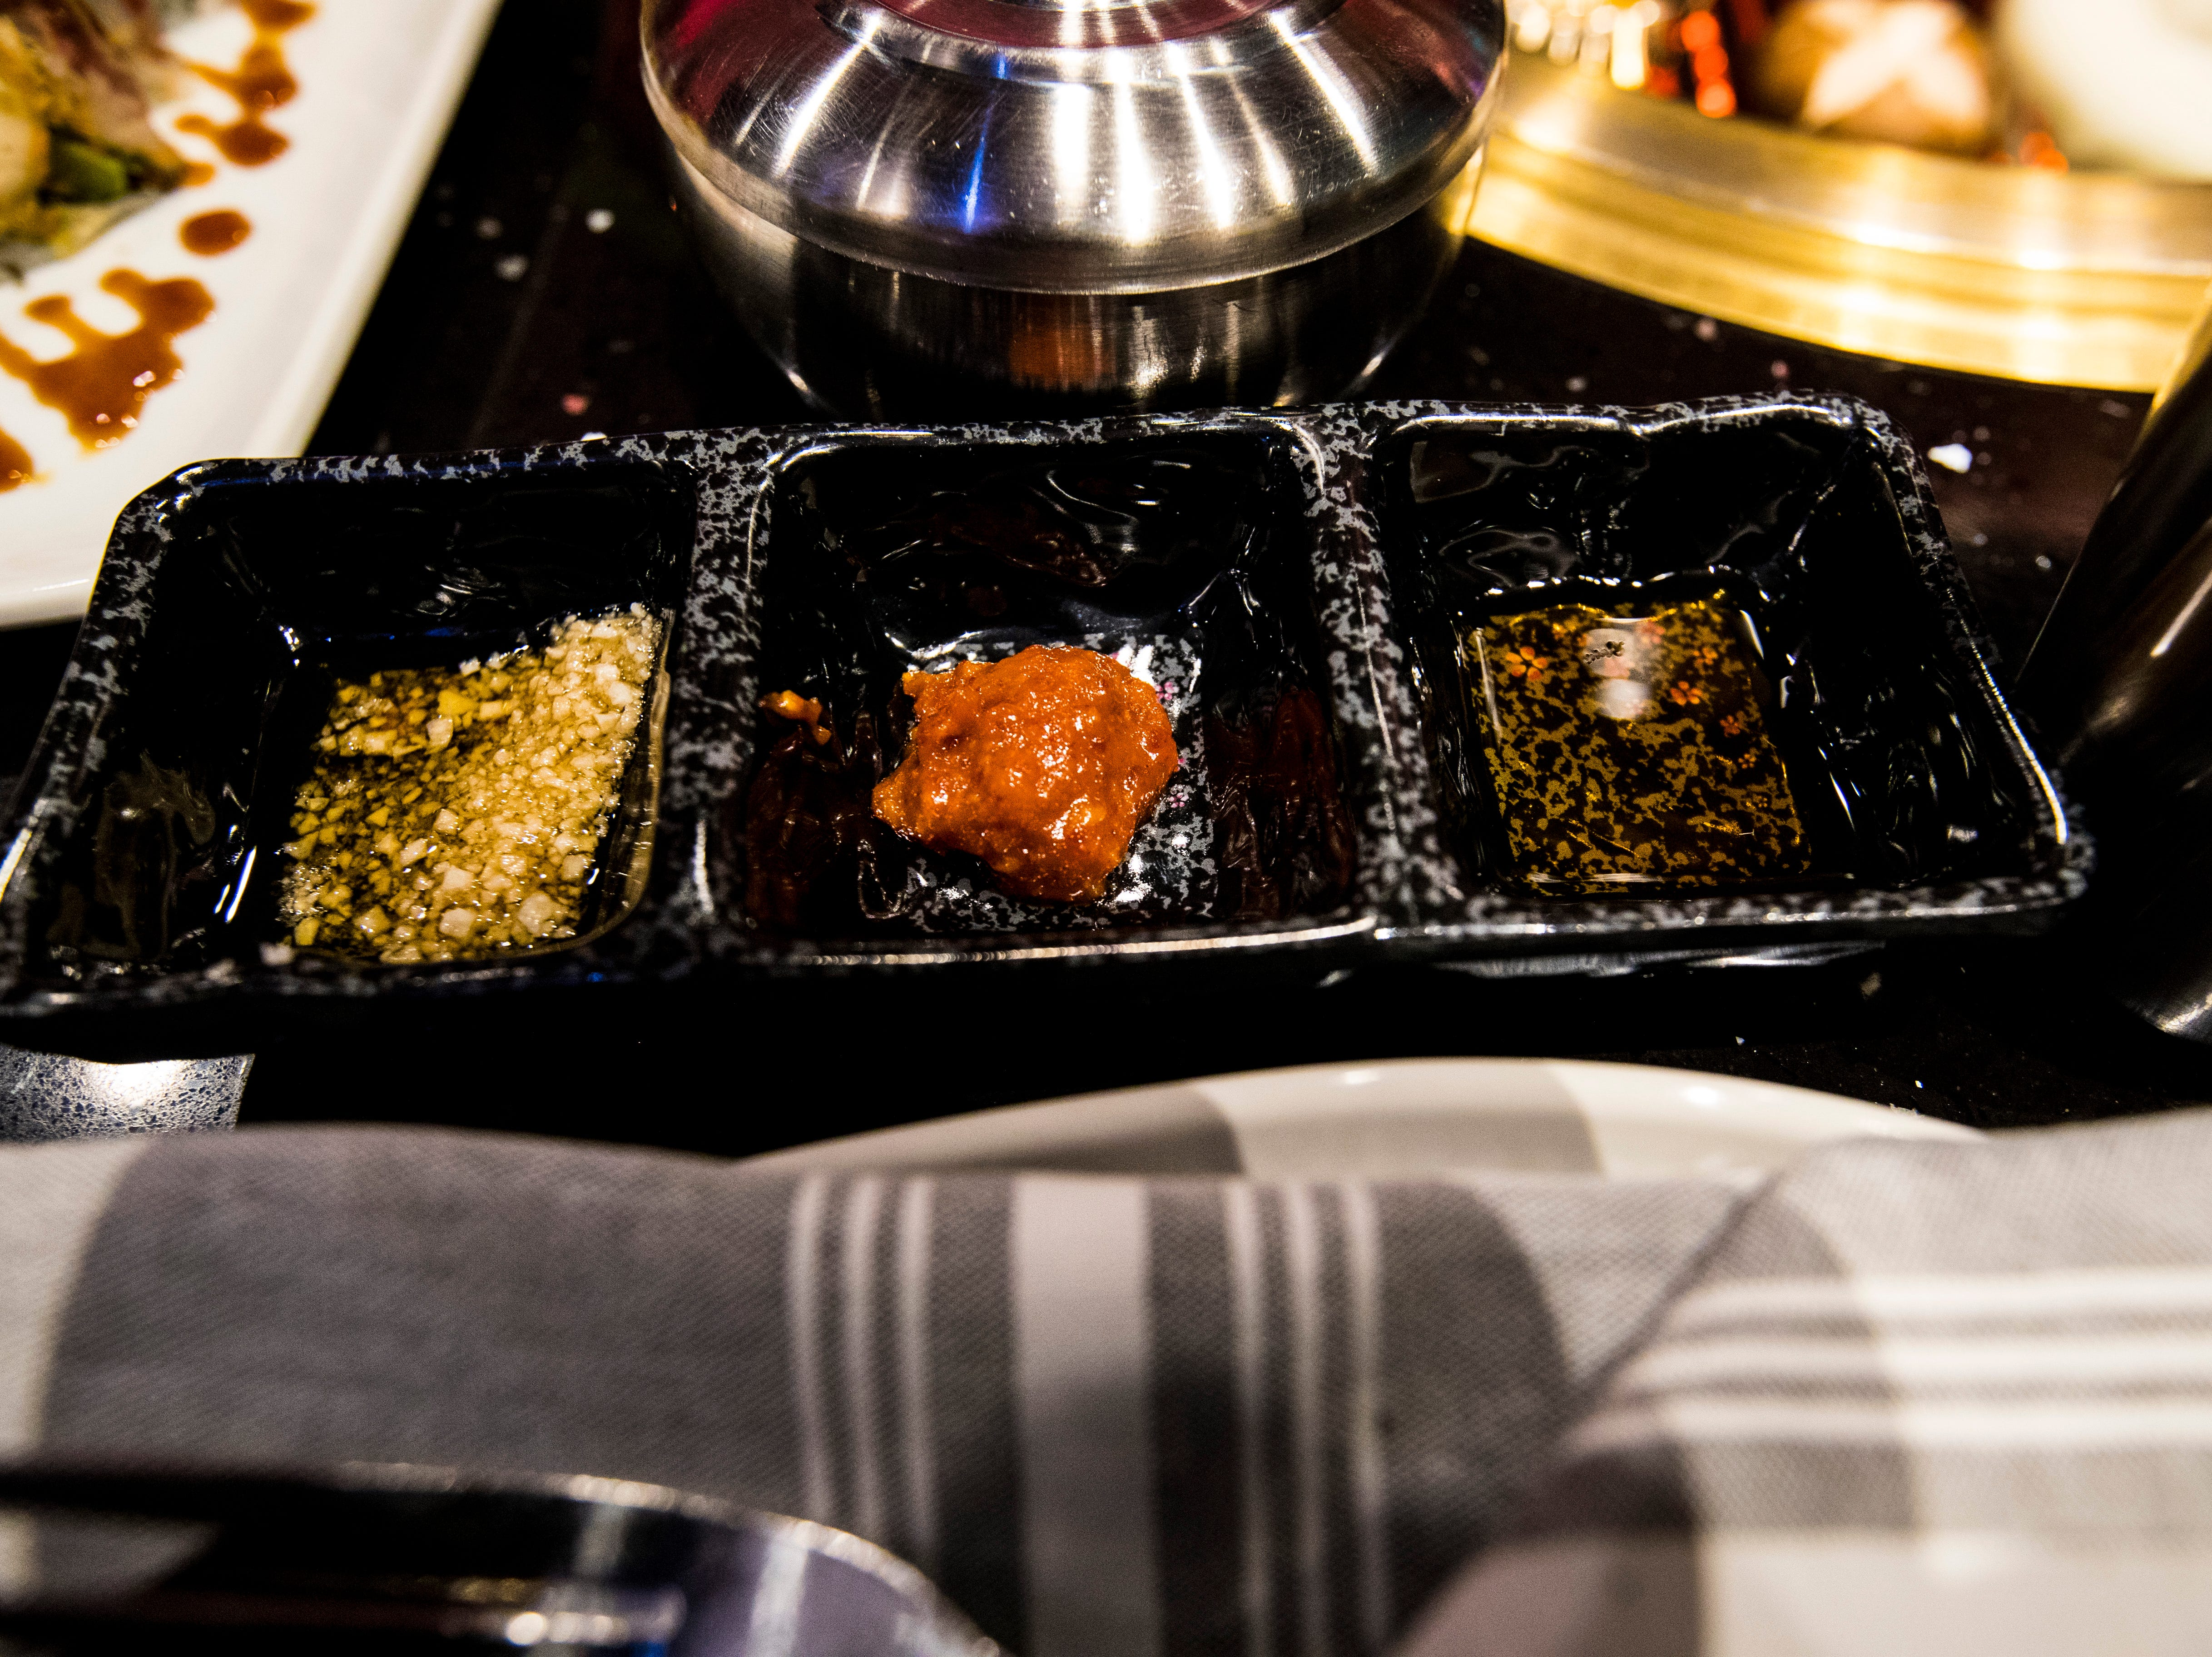 The Korean BBQ comes with three dipping sauces. Ember Korean Steakhouse, in south Fort Myers, opened in mid-December in the former Stonewood Grill space on College Parkway. The restaurant offers Korean barbecue along with a modern, Asian-American gastropub menu. It also features a sushi bar and craft cocktails. Ember completed a stunning redesign of the old Stonewood space.